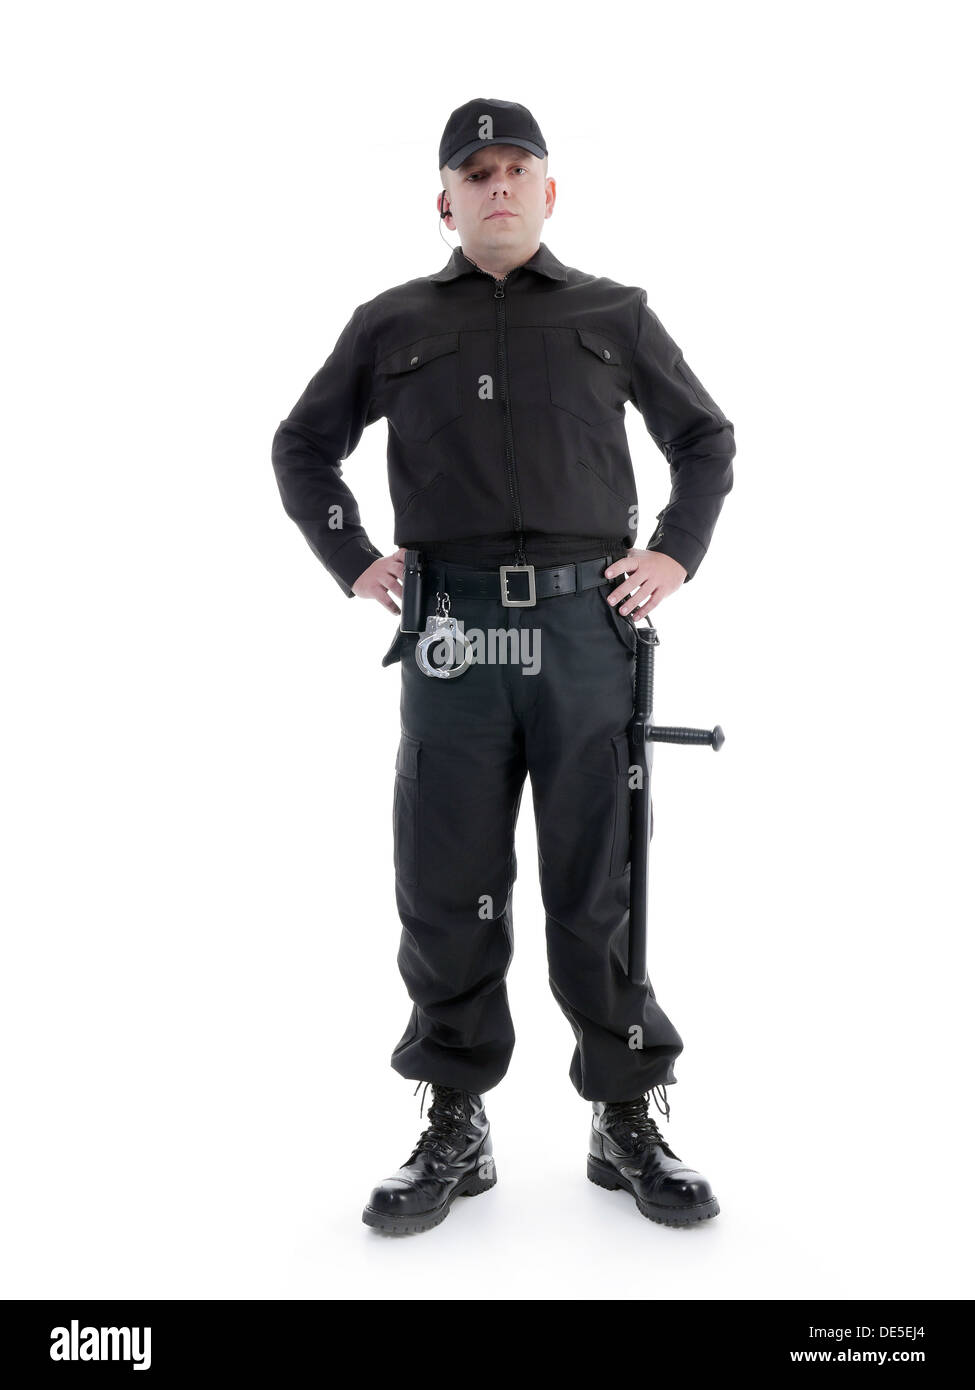 Security man wearing black uniform equipped with police club and handcuffs standing confidently with hands resting on hip - Stock Image